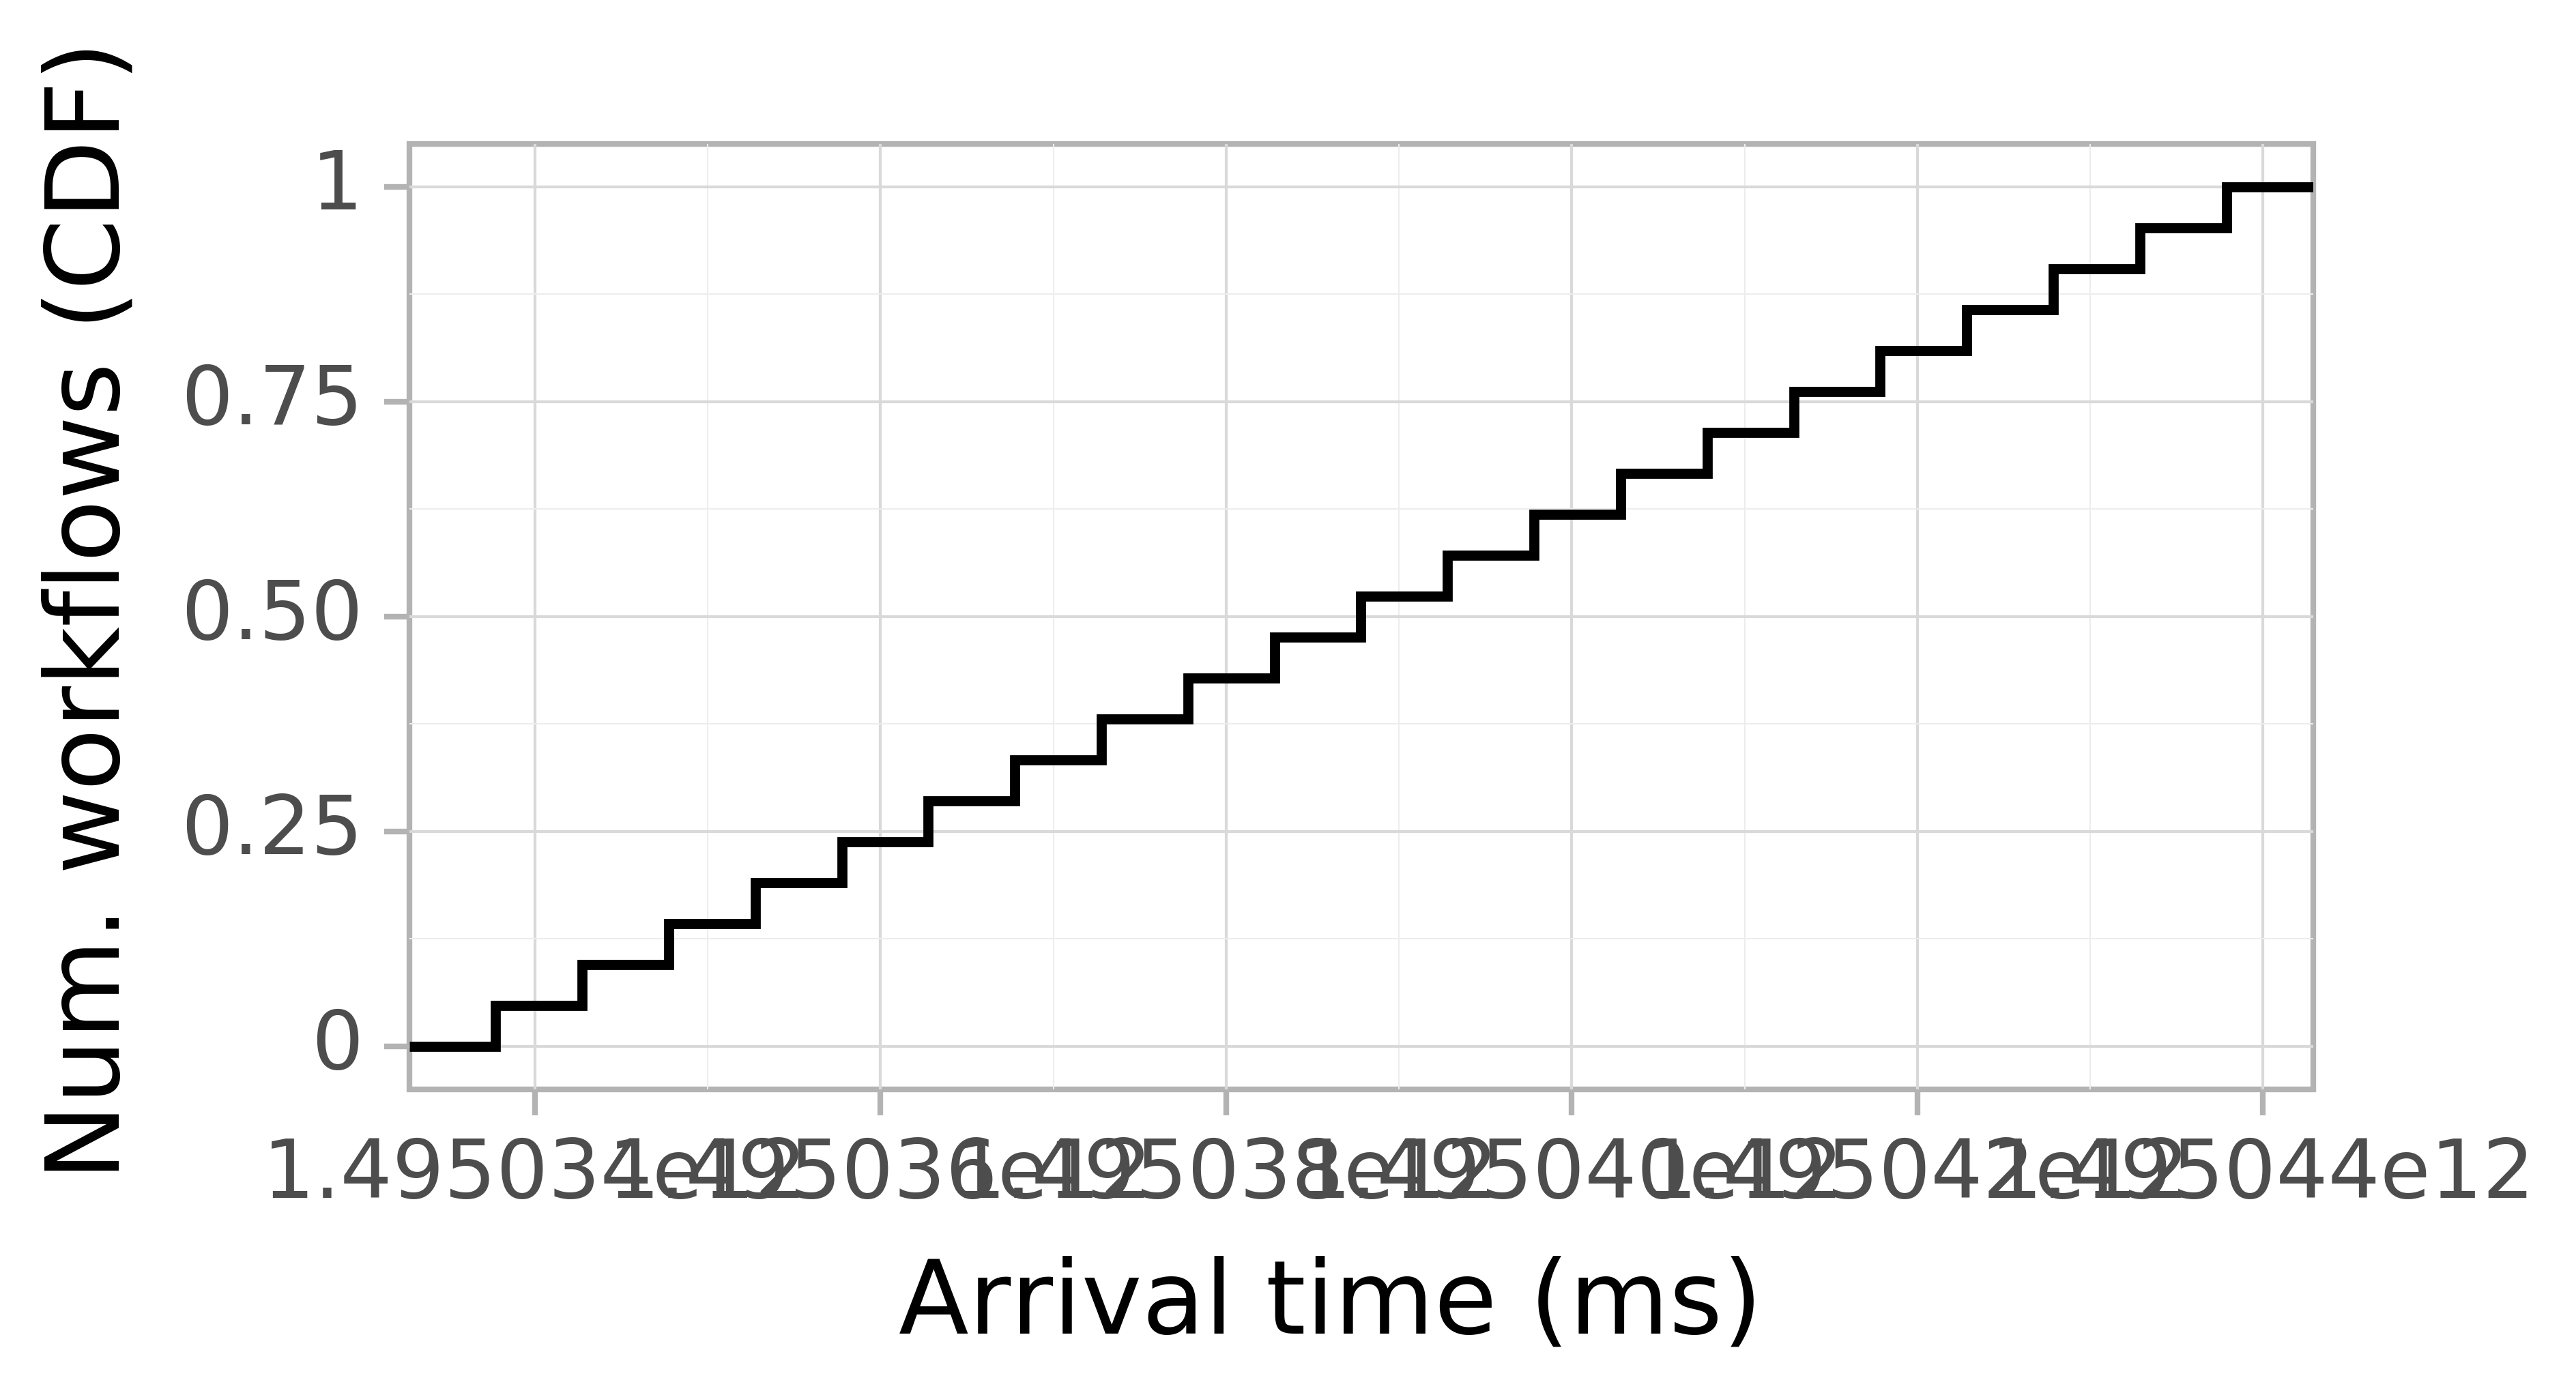 Job arrival CDF graph for the askalon-new_ee61 trace.